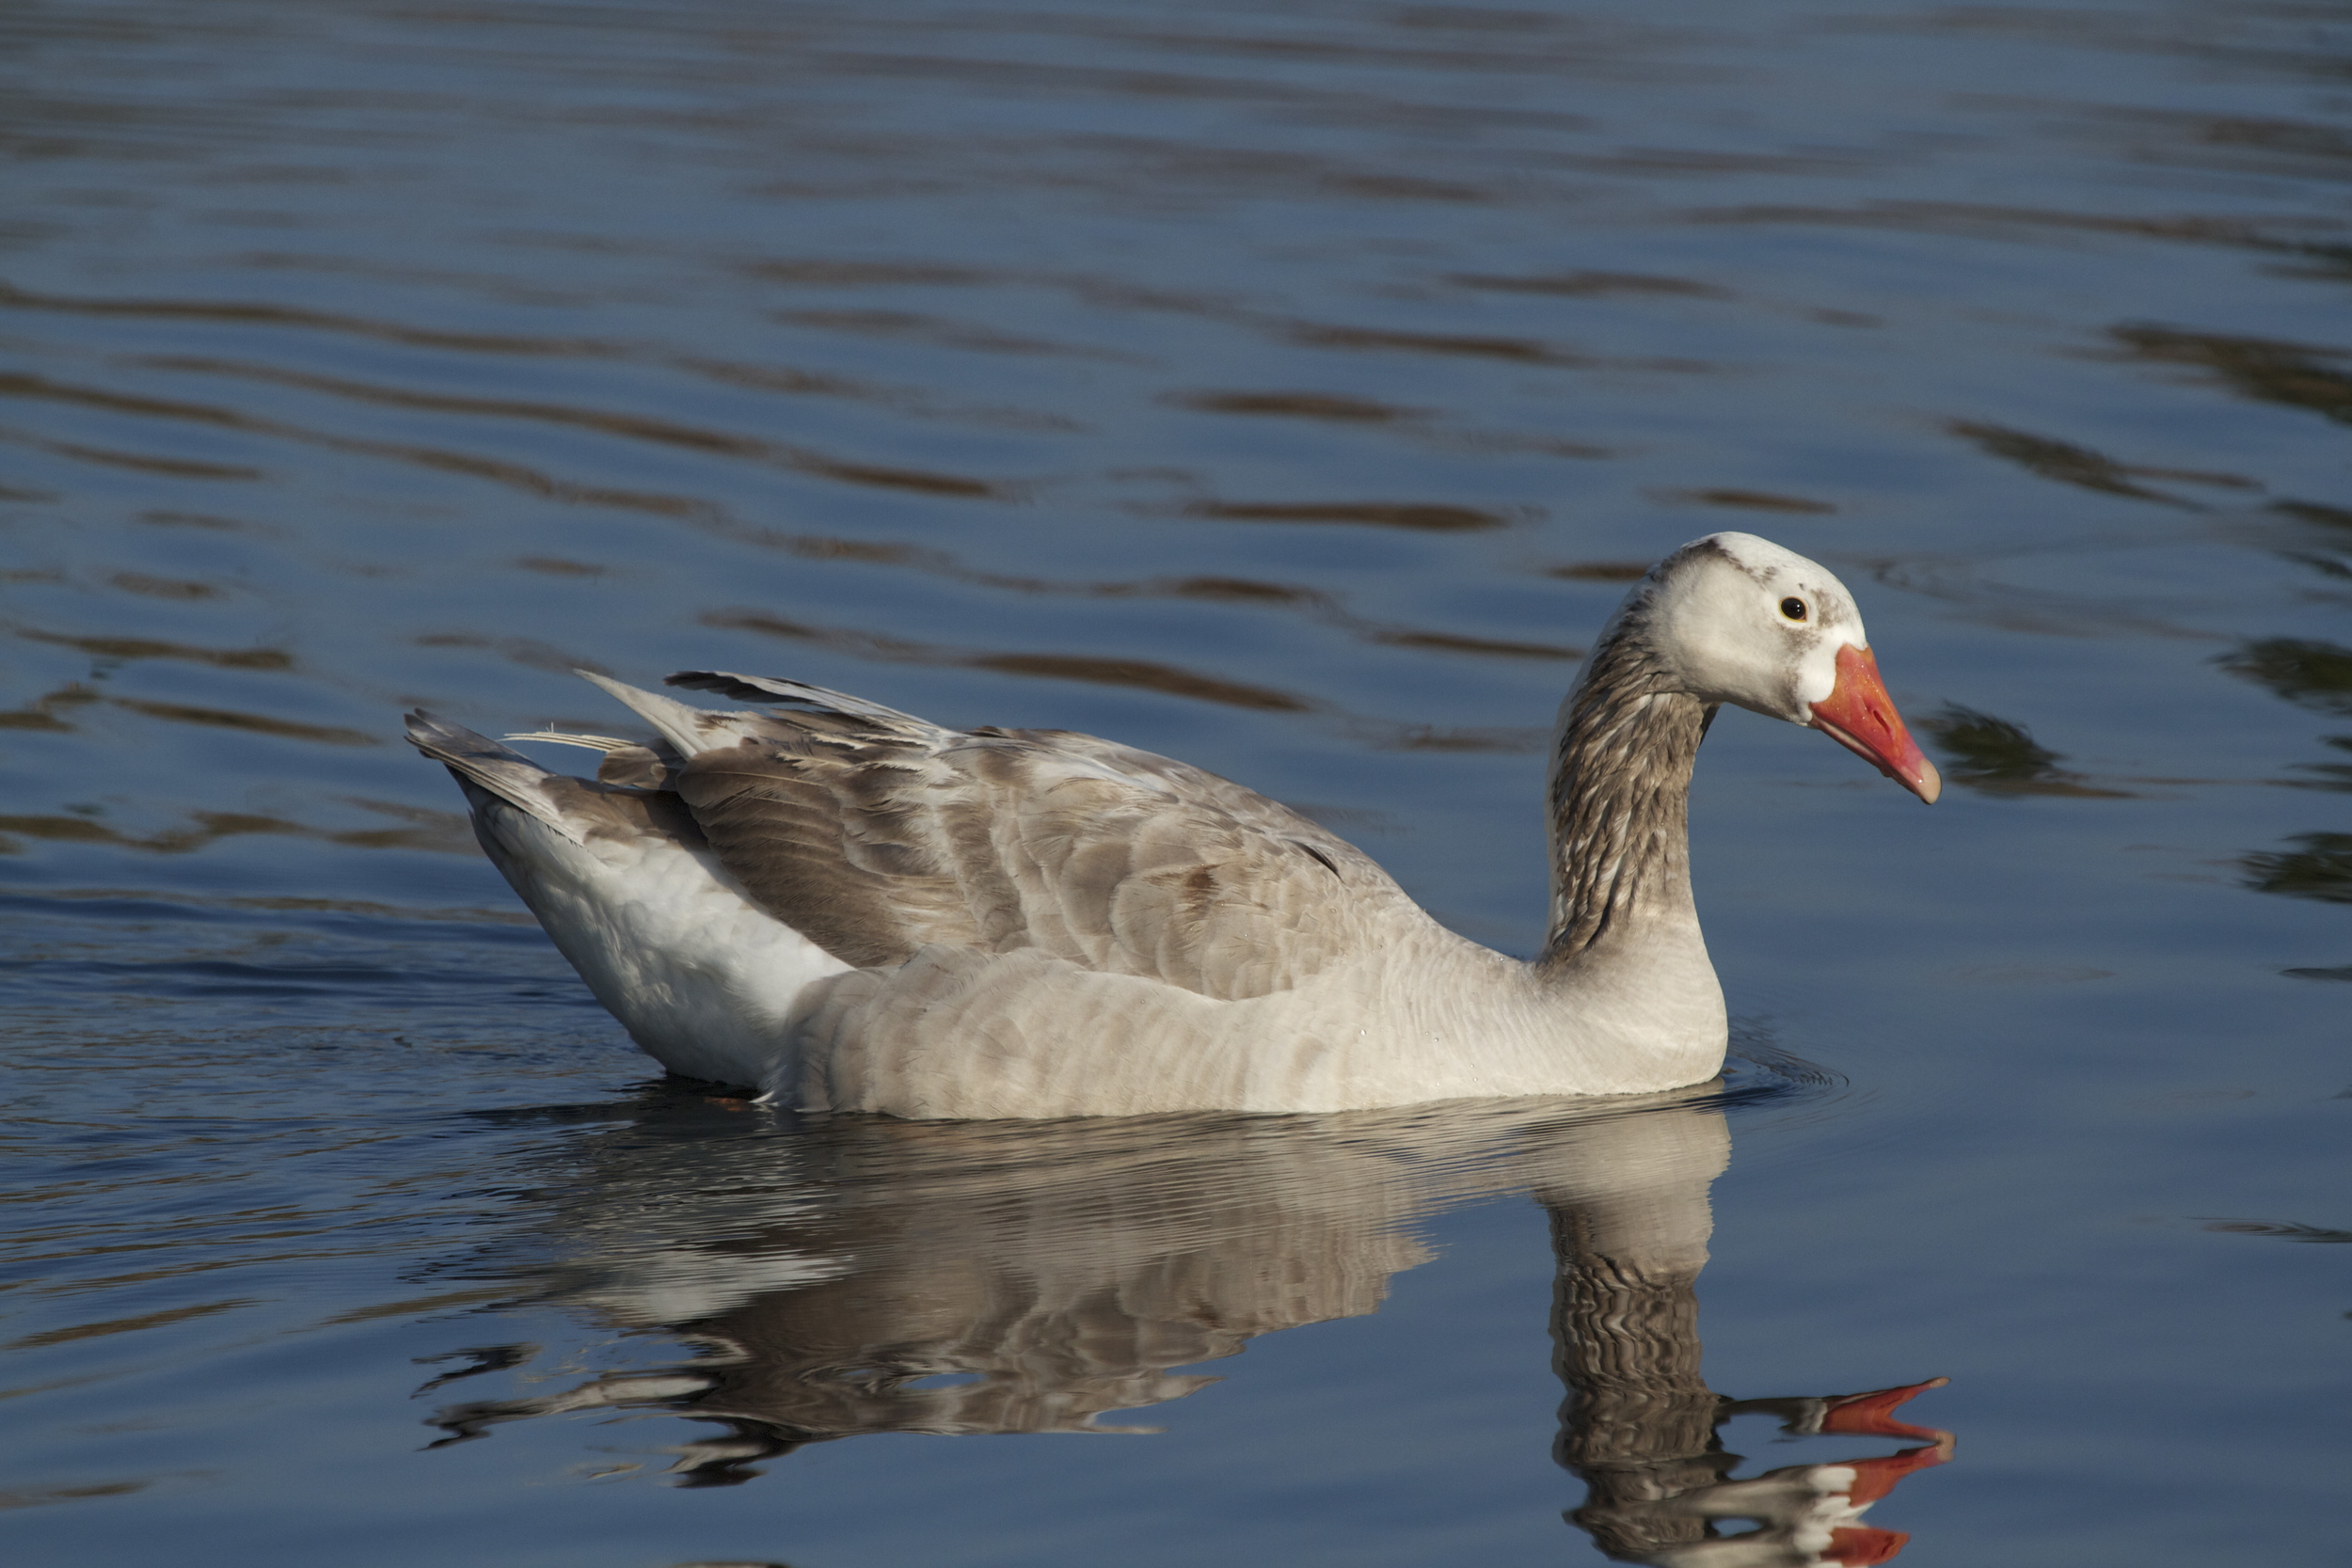 Today's performance of SWAN LAKE on Goose Pond is brought to you by me, Gray Goose!.